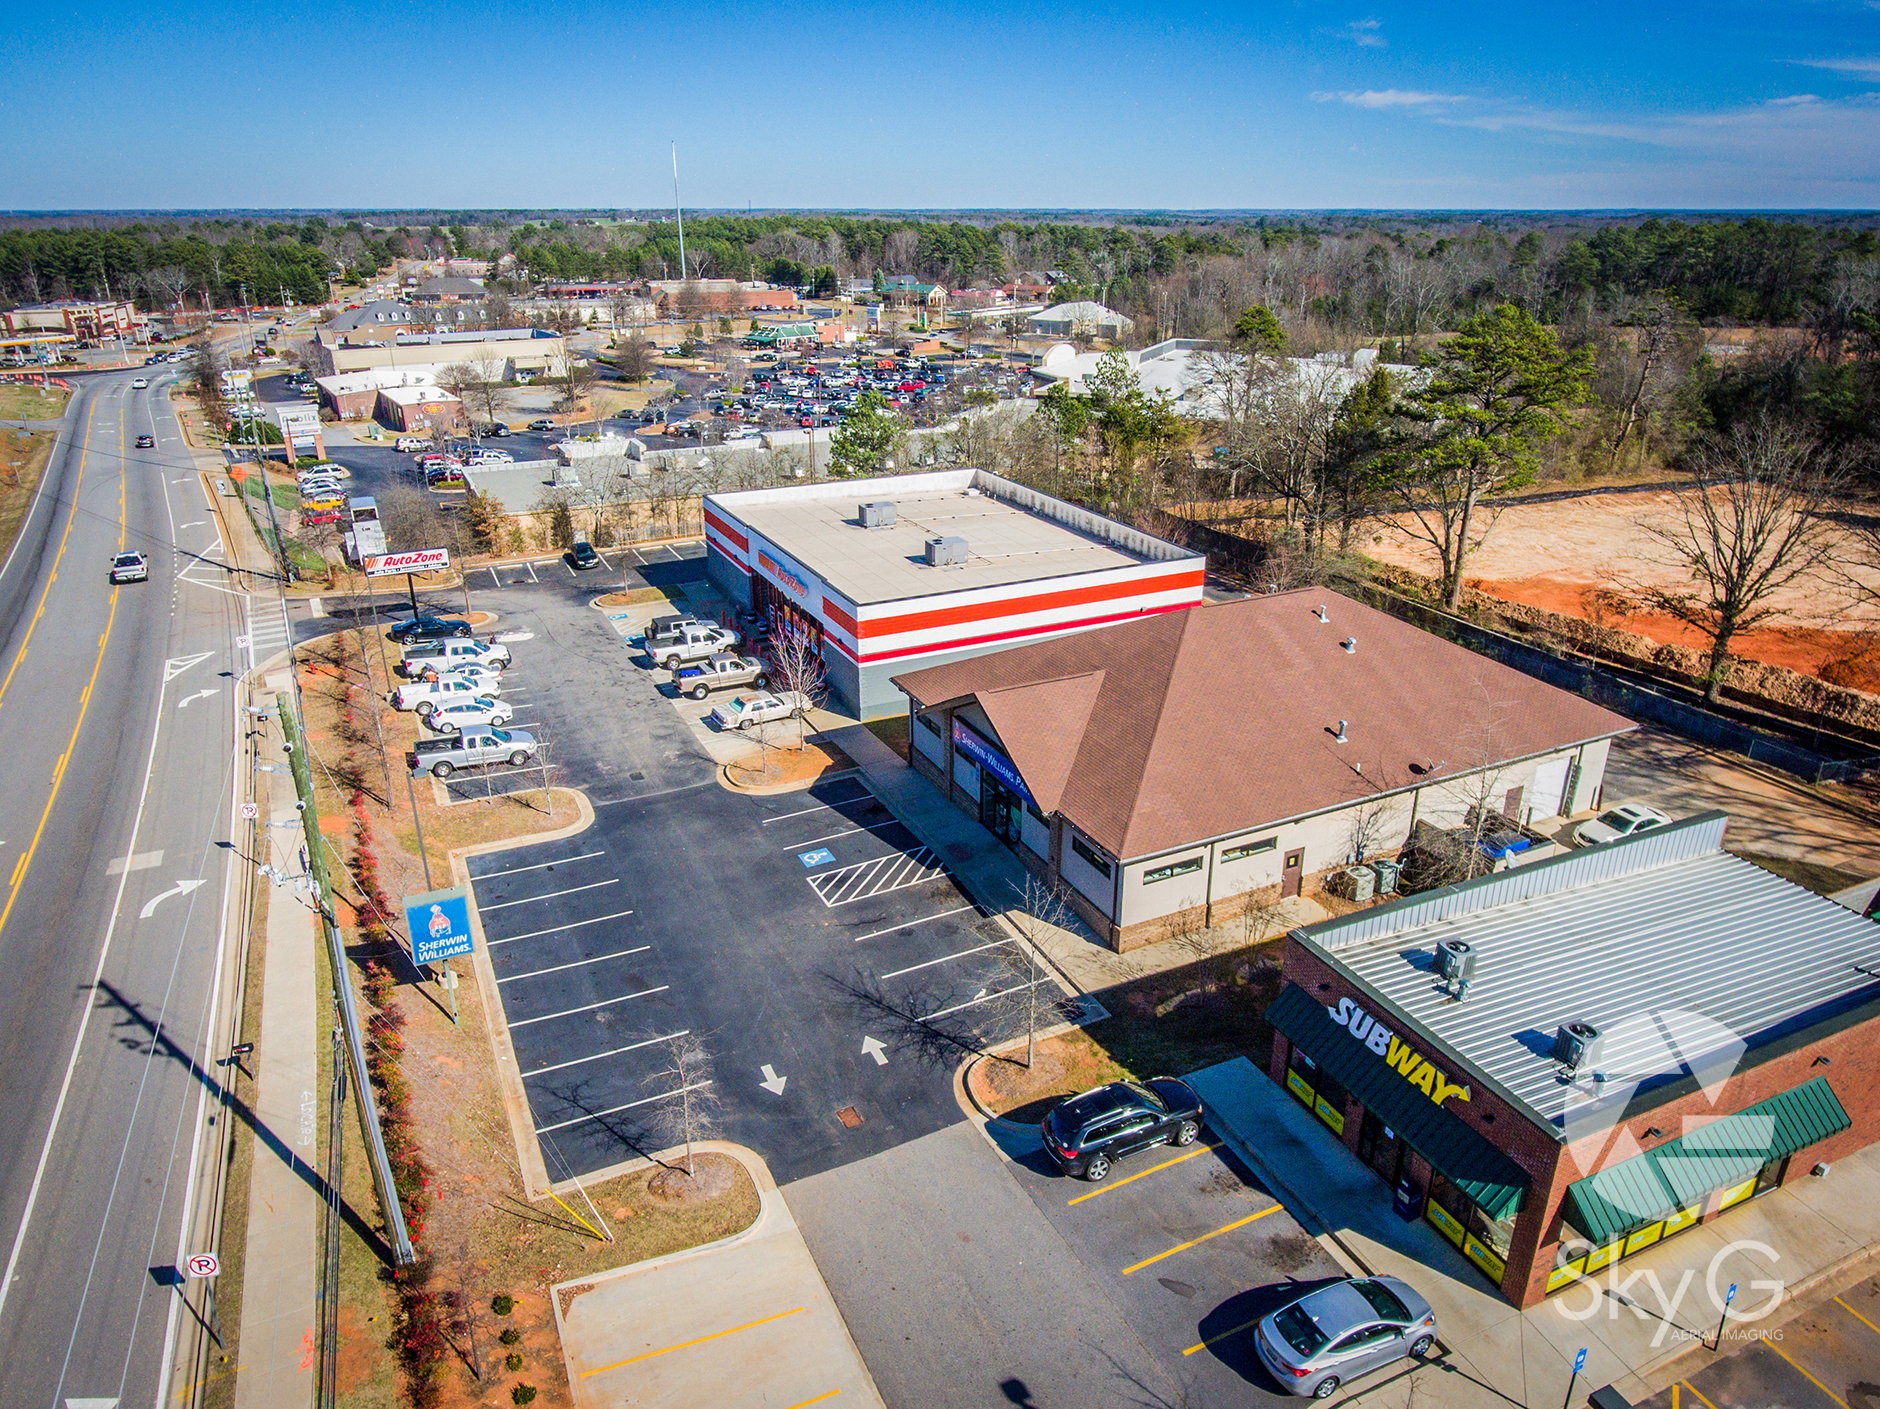 Commercial Real Estate - Retail Shopping Center